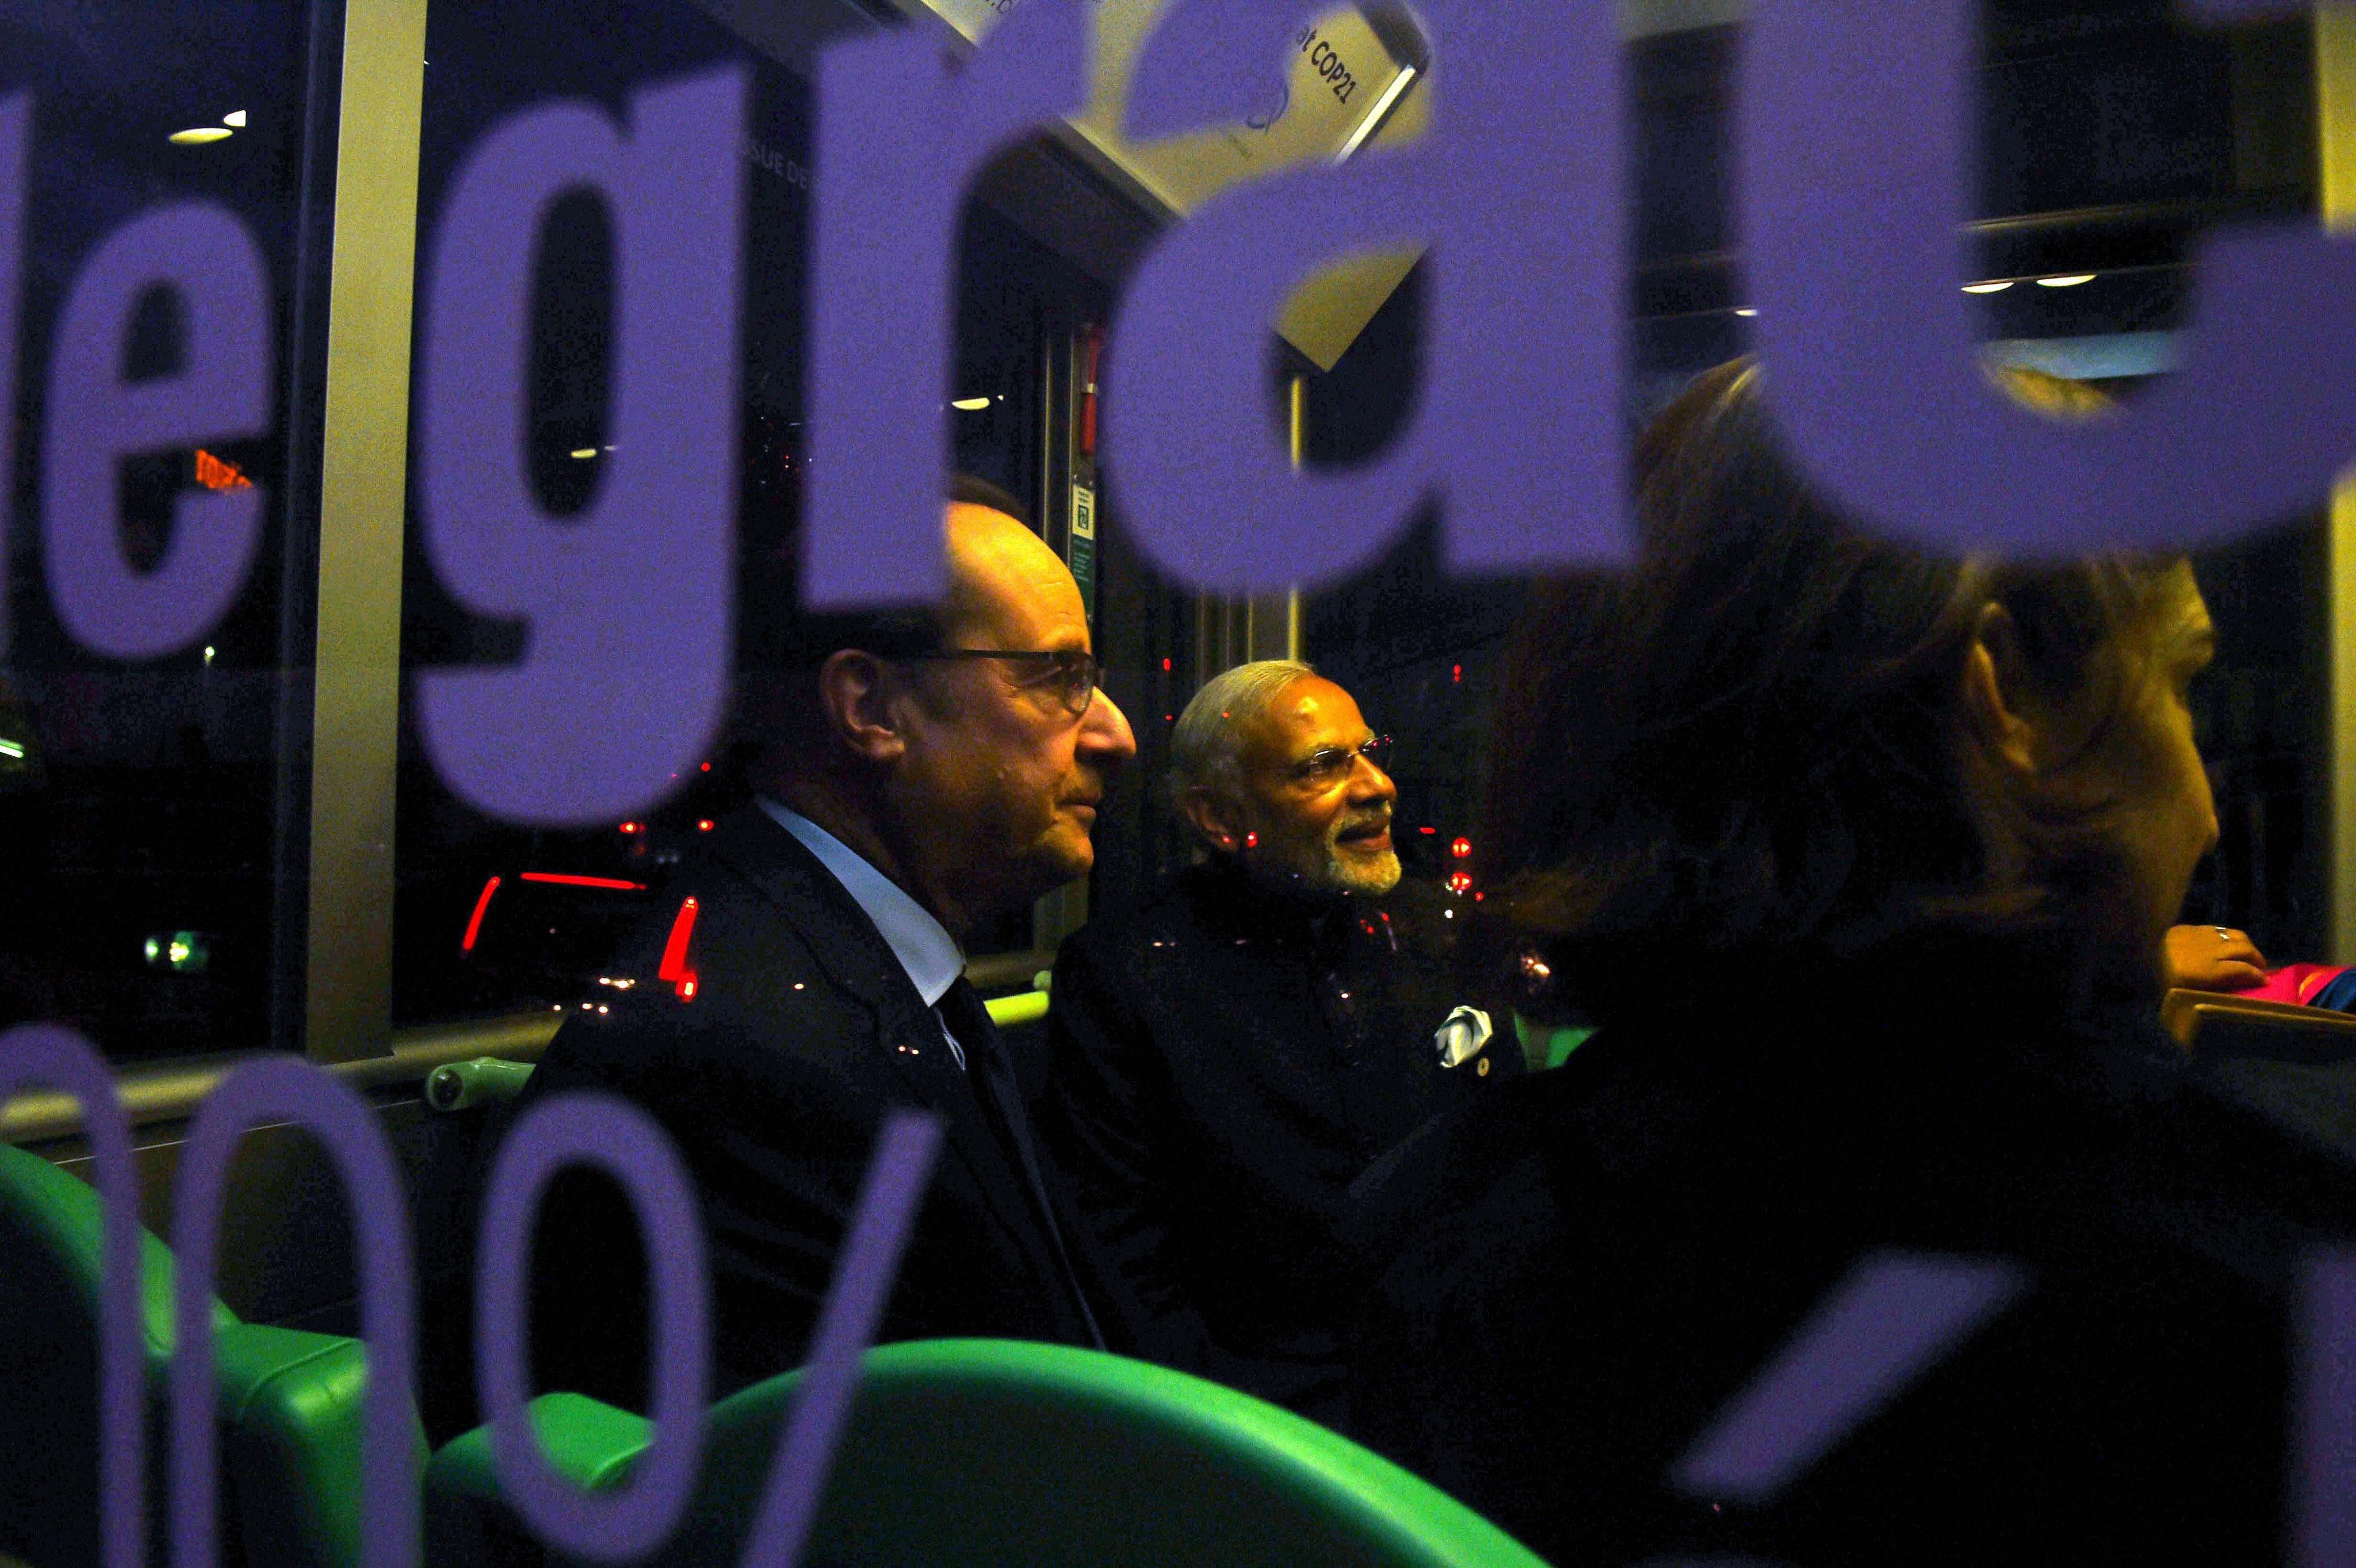 Prime Minister Narendra Modi with French President Francois Hollande sitting in the shuttle bus for an event at COP21, the United Nations Climate Change Conference, in Le Bourget, outside Paris, on Monday. Credit: PTI Photo by Atul Yadav